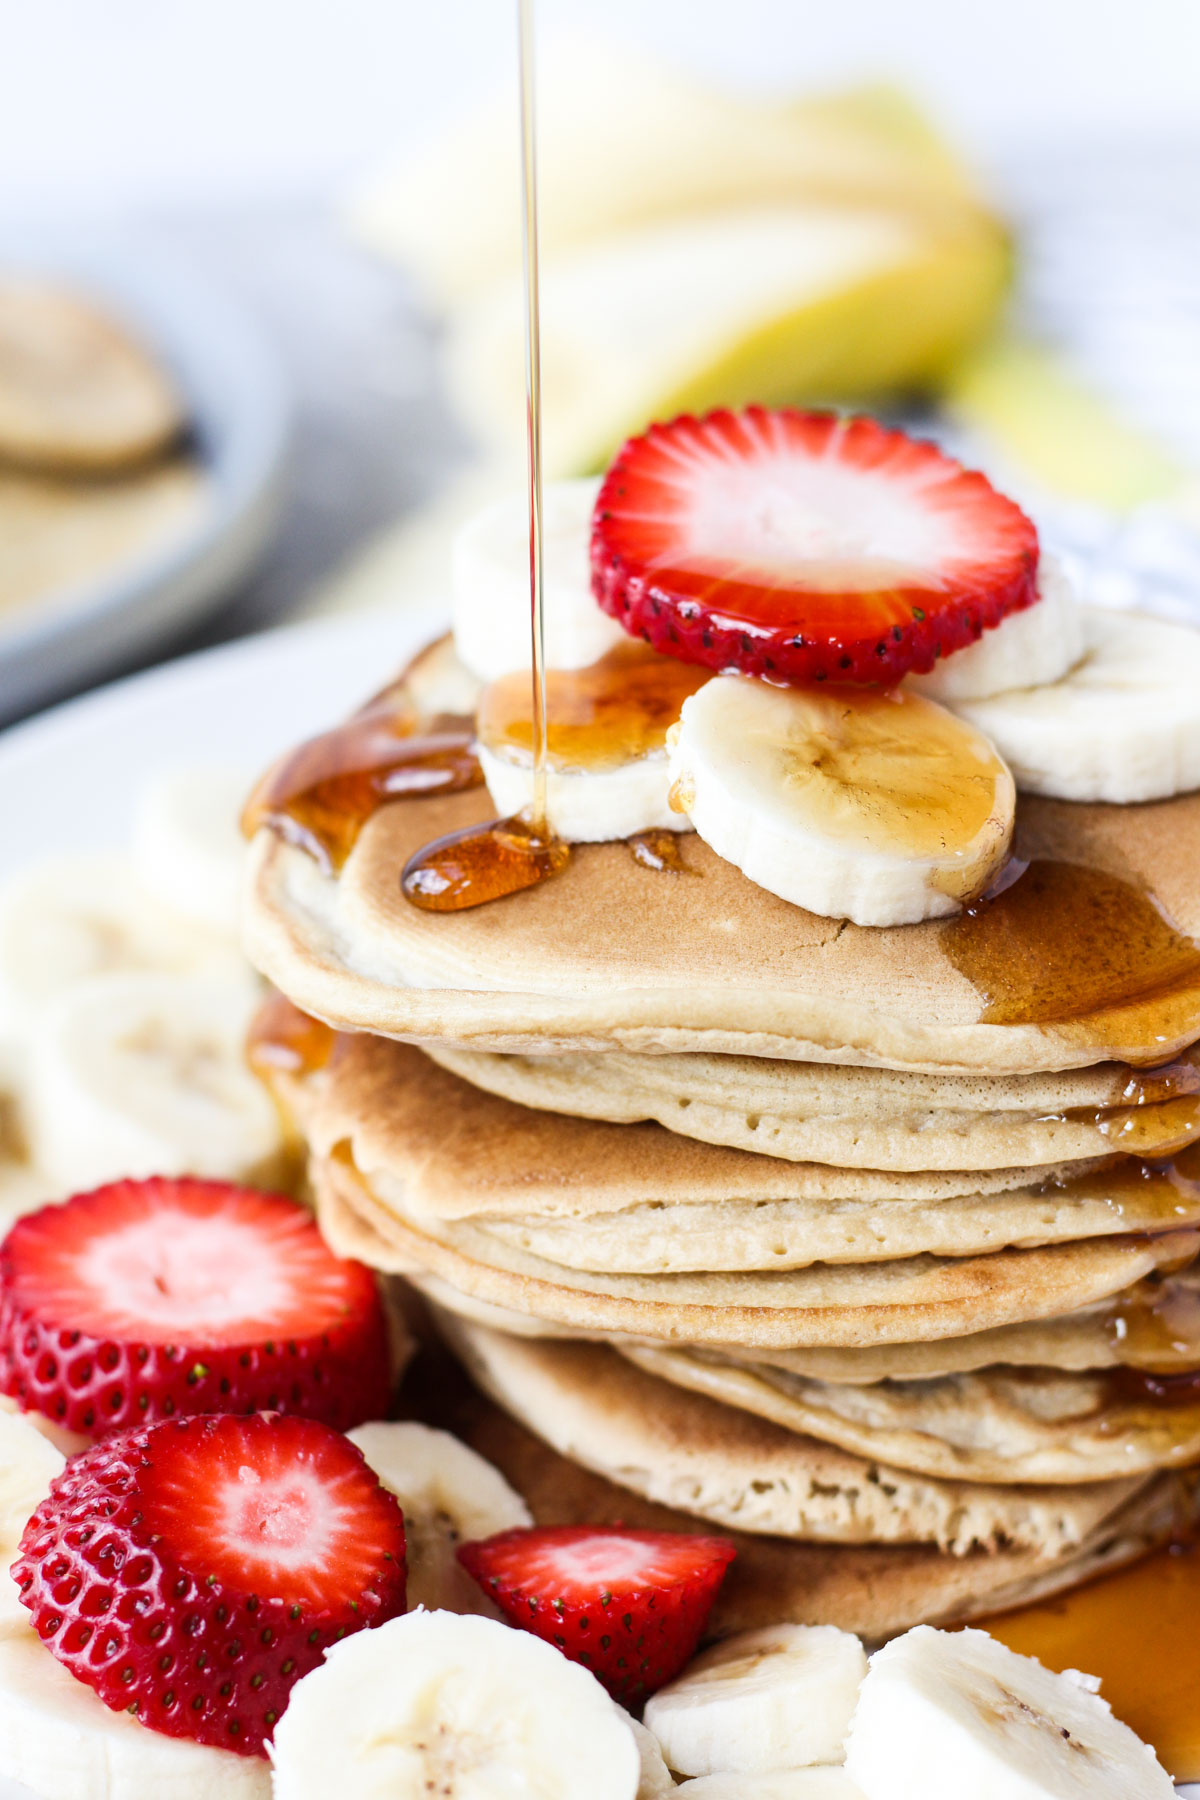 Pancakes stacked with maple syrup being poured on top.